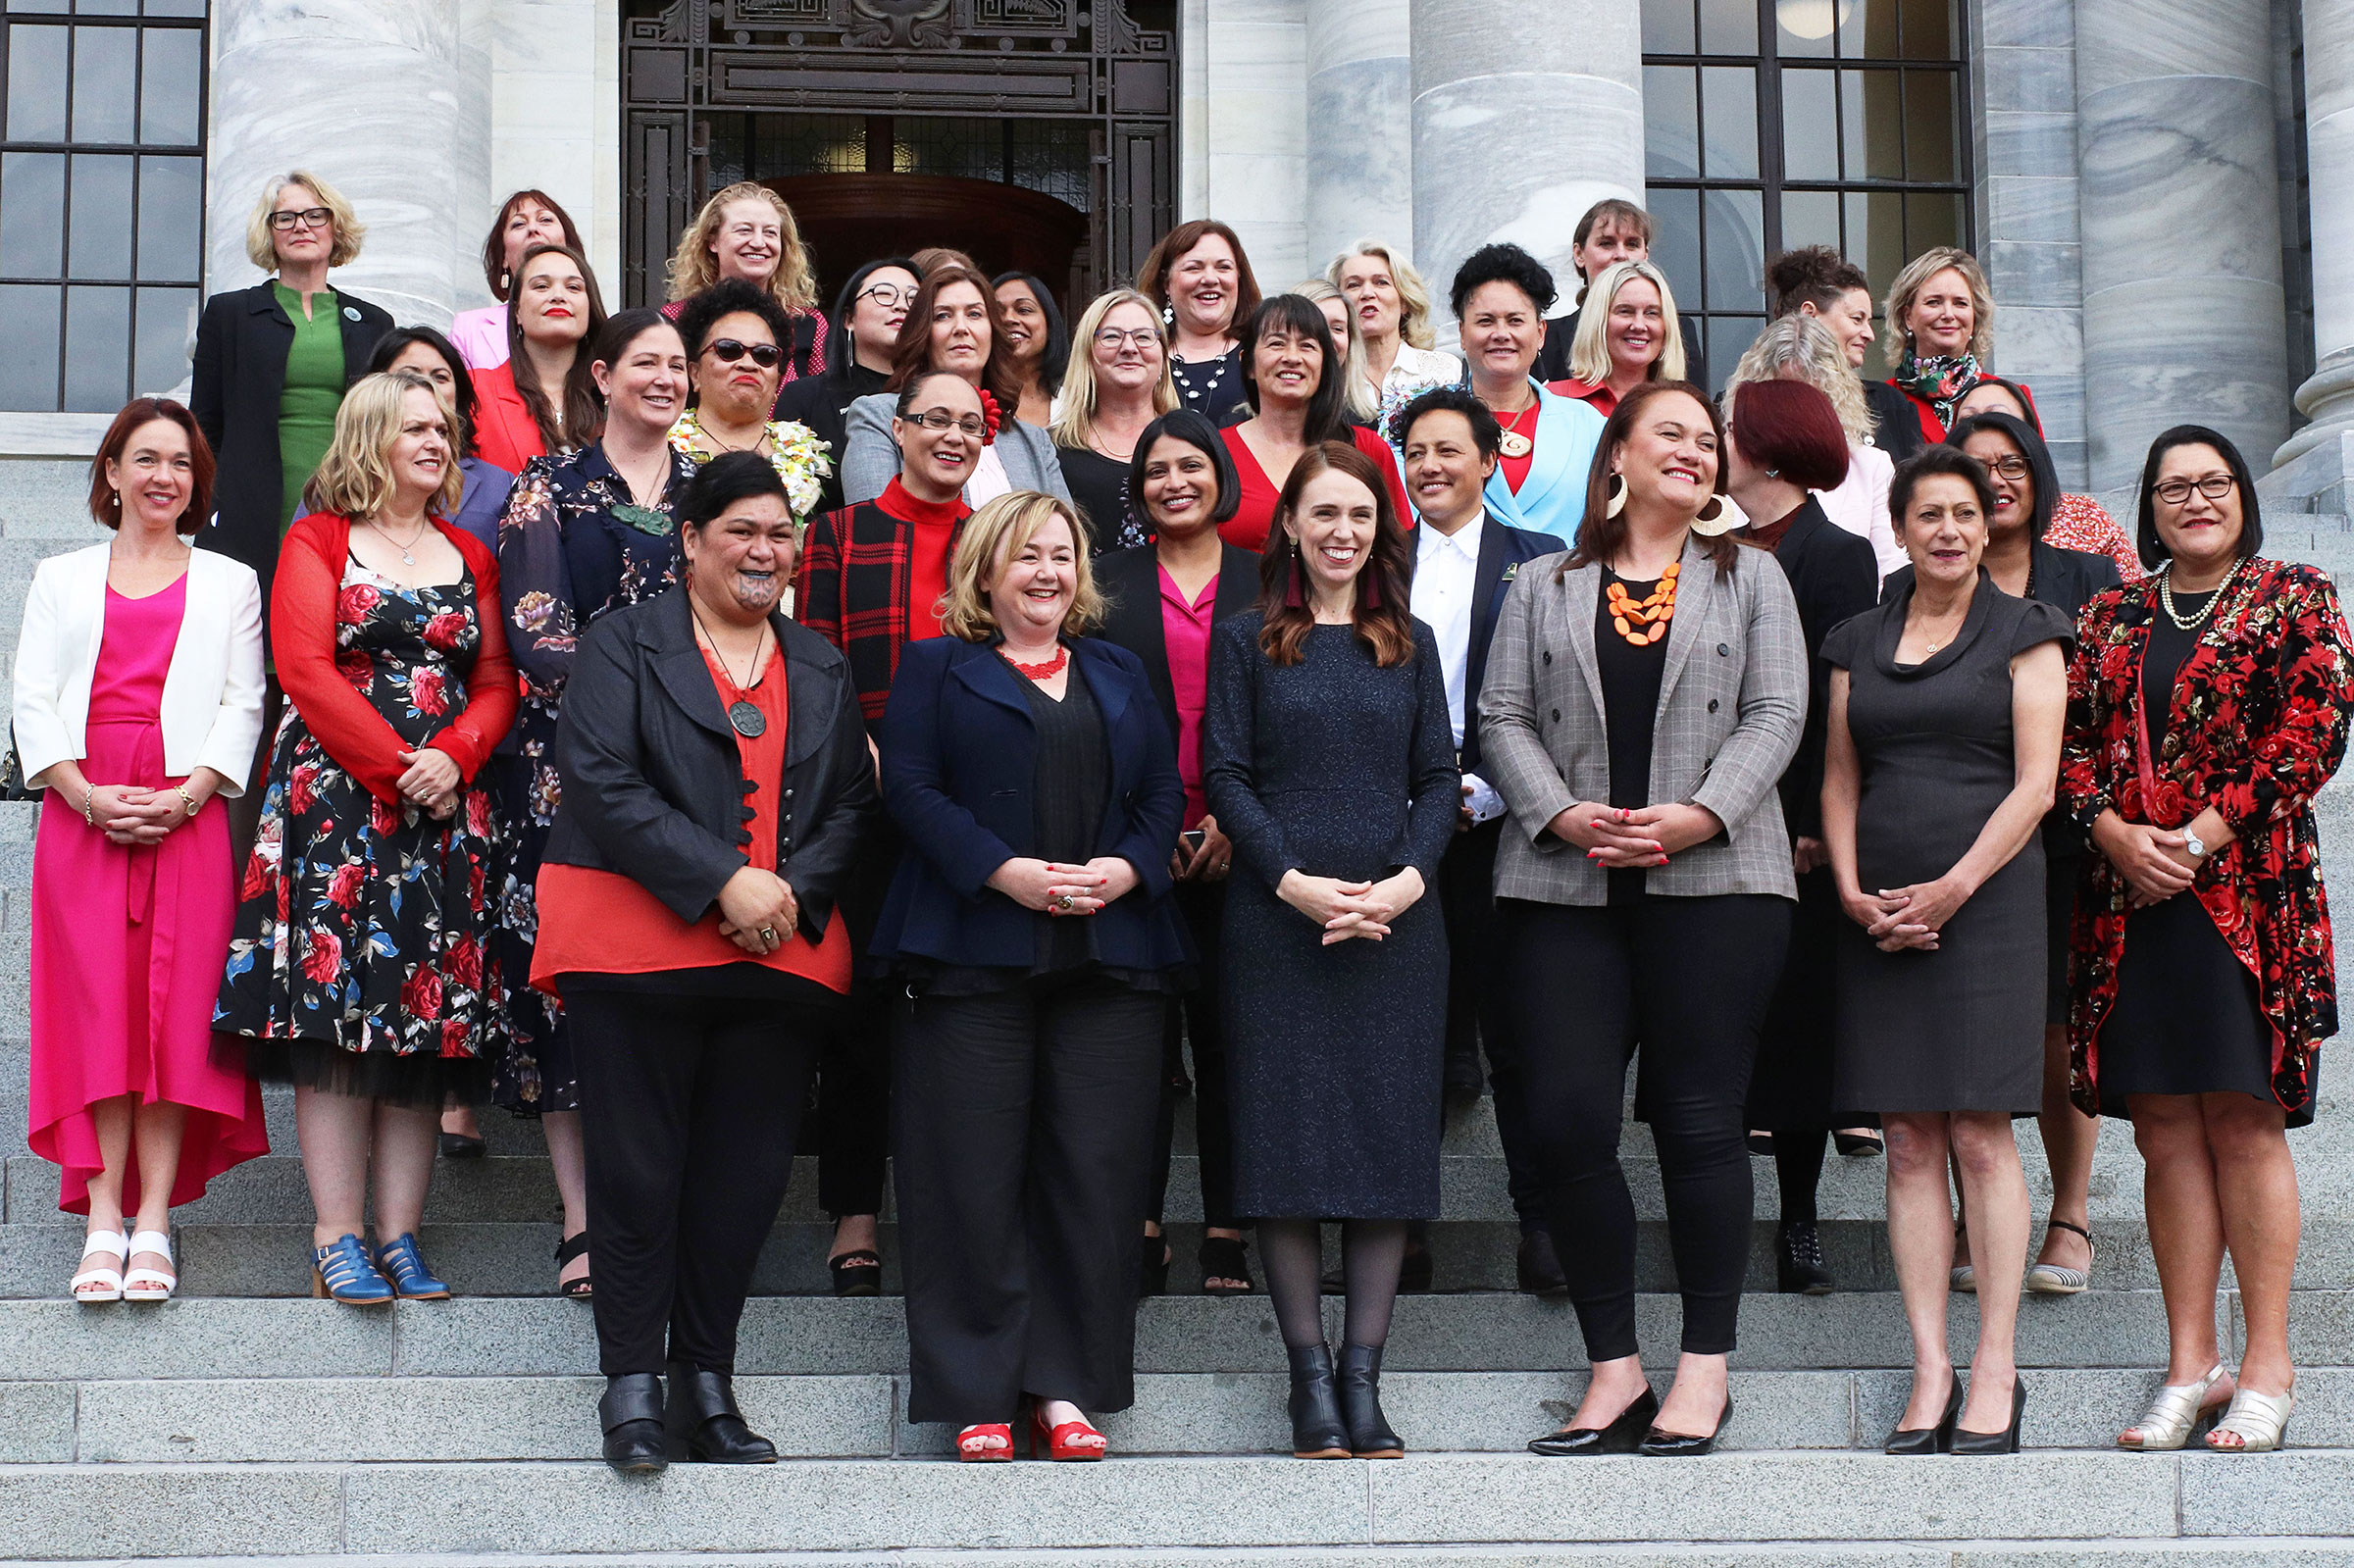 The New Zealand Labour Party's female MPs on the steps of parliament on Nov. 24, 2020, in Wellington.